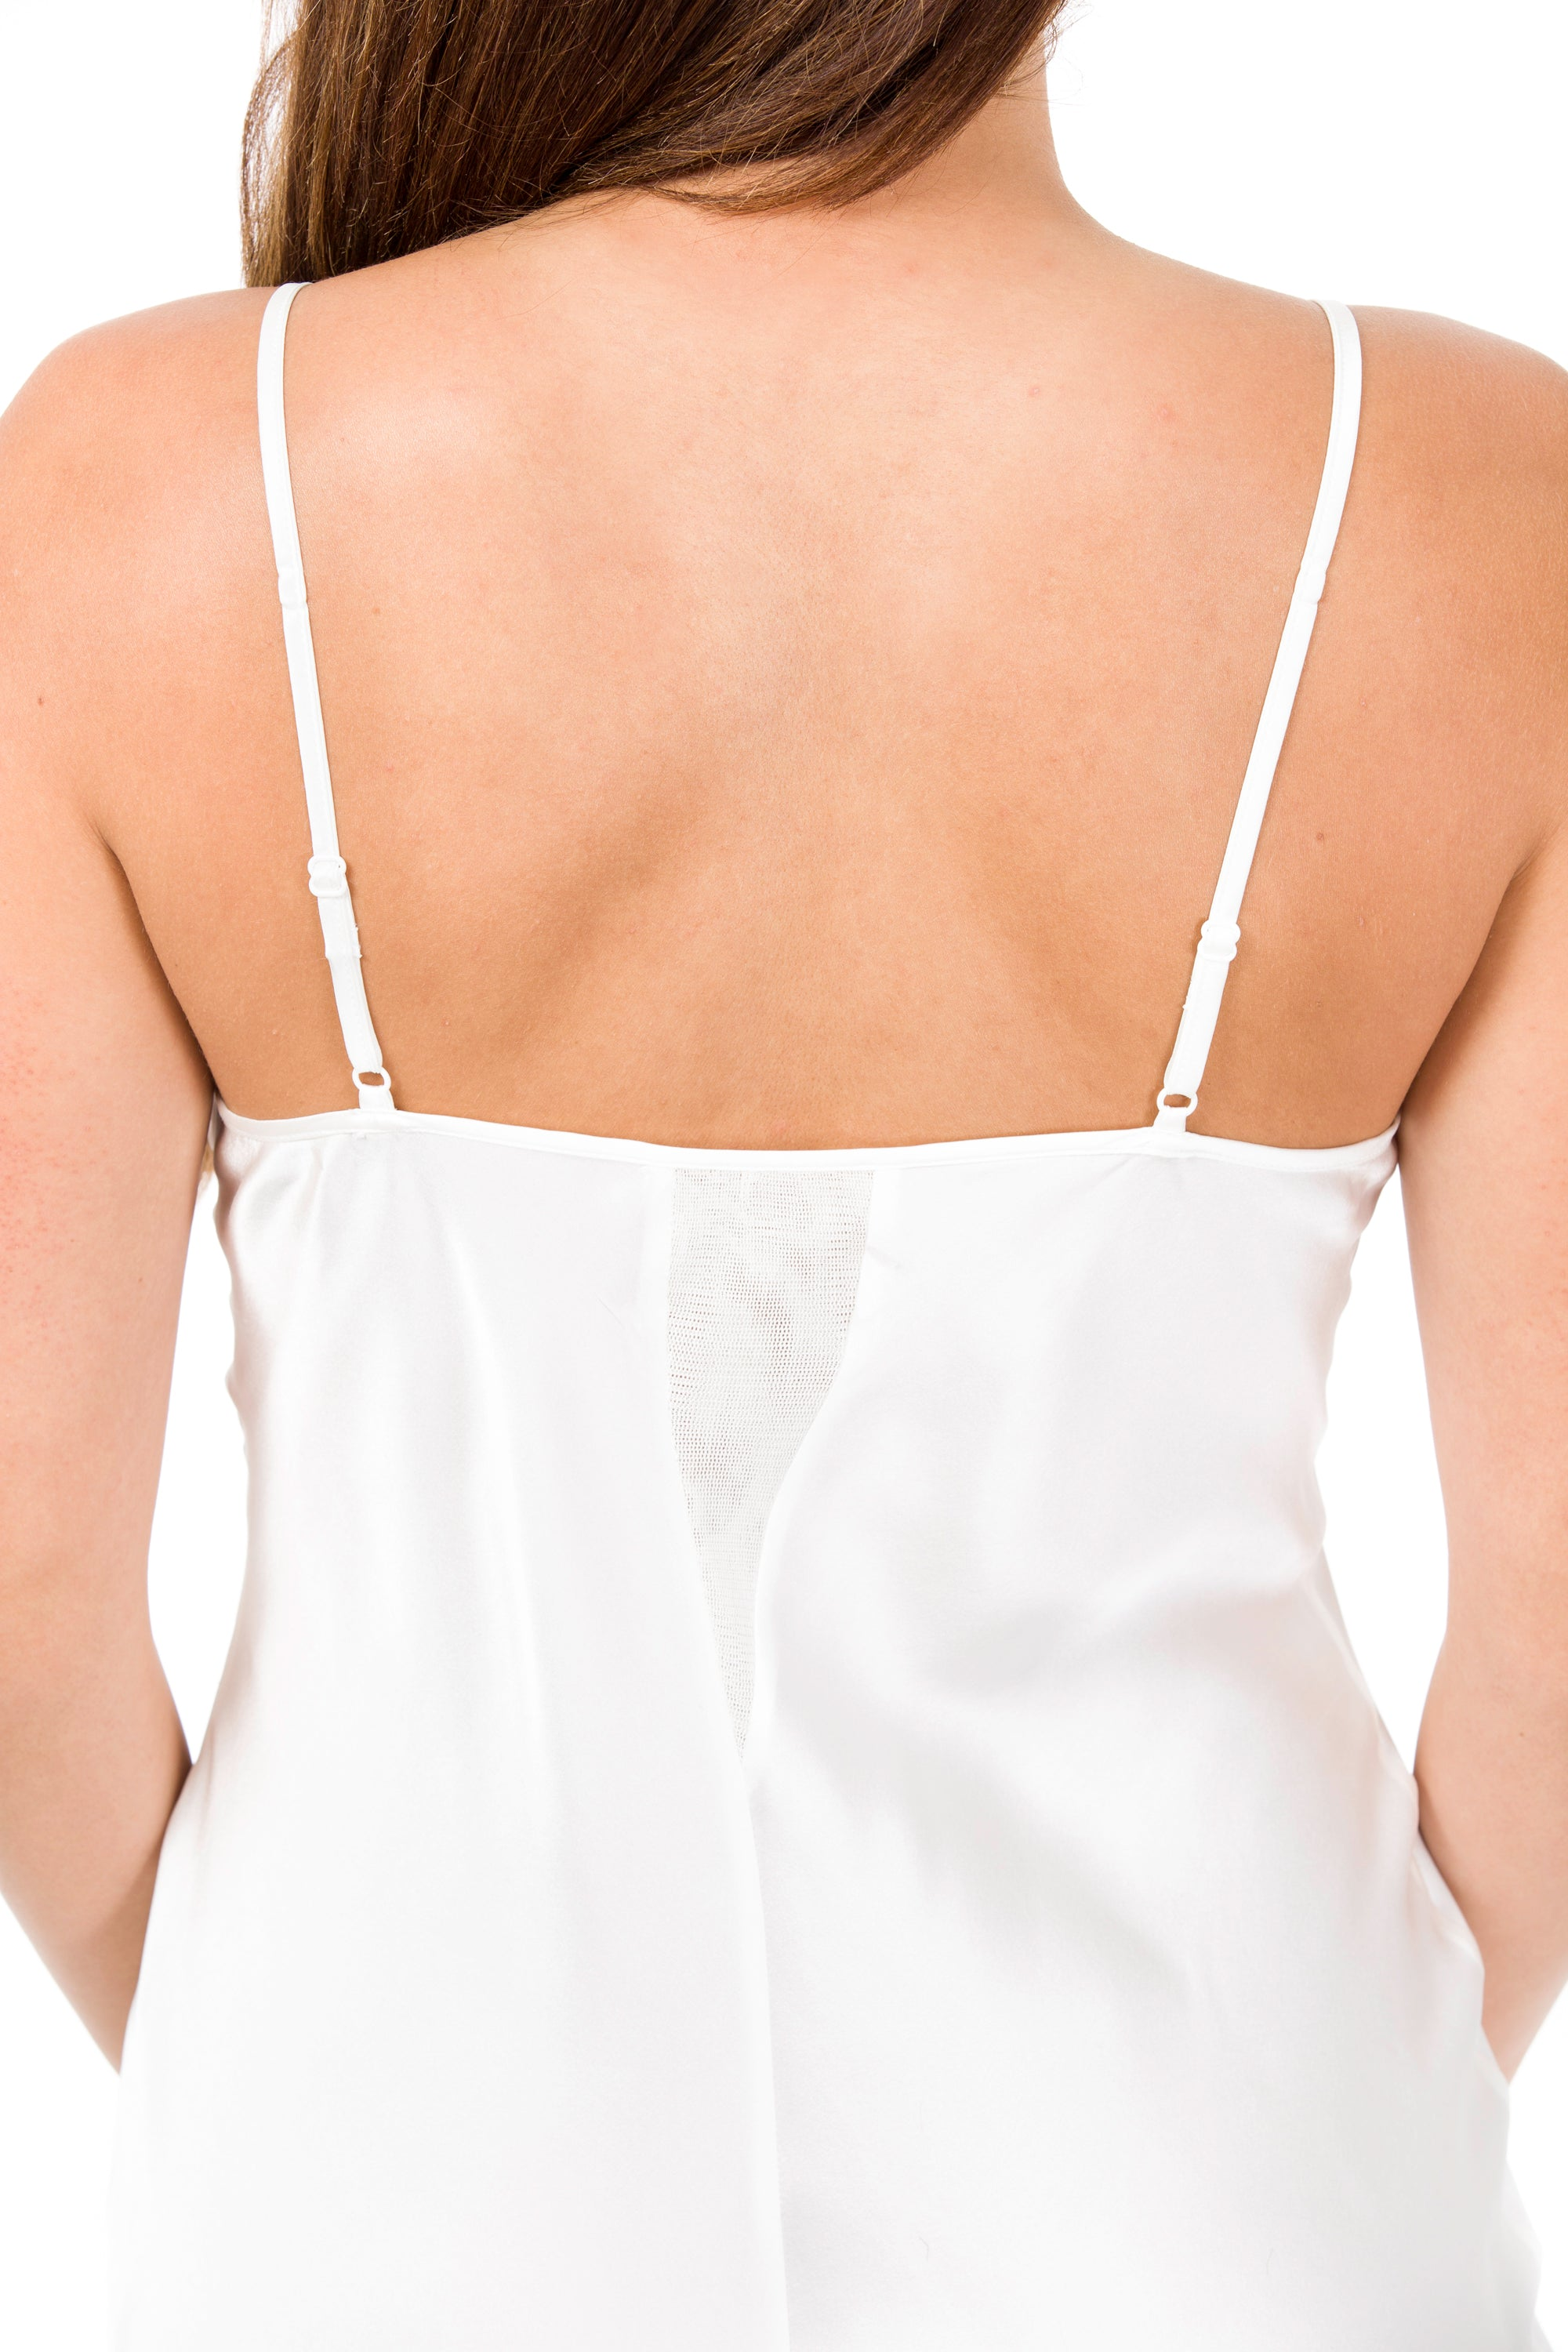 PLOW Organic Silk Slip in Raw White